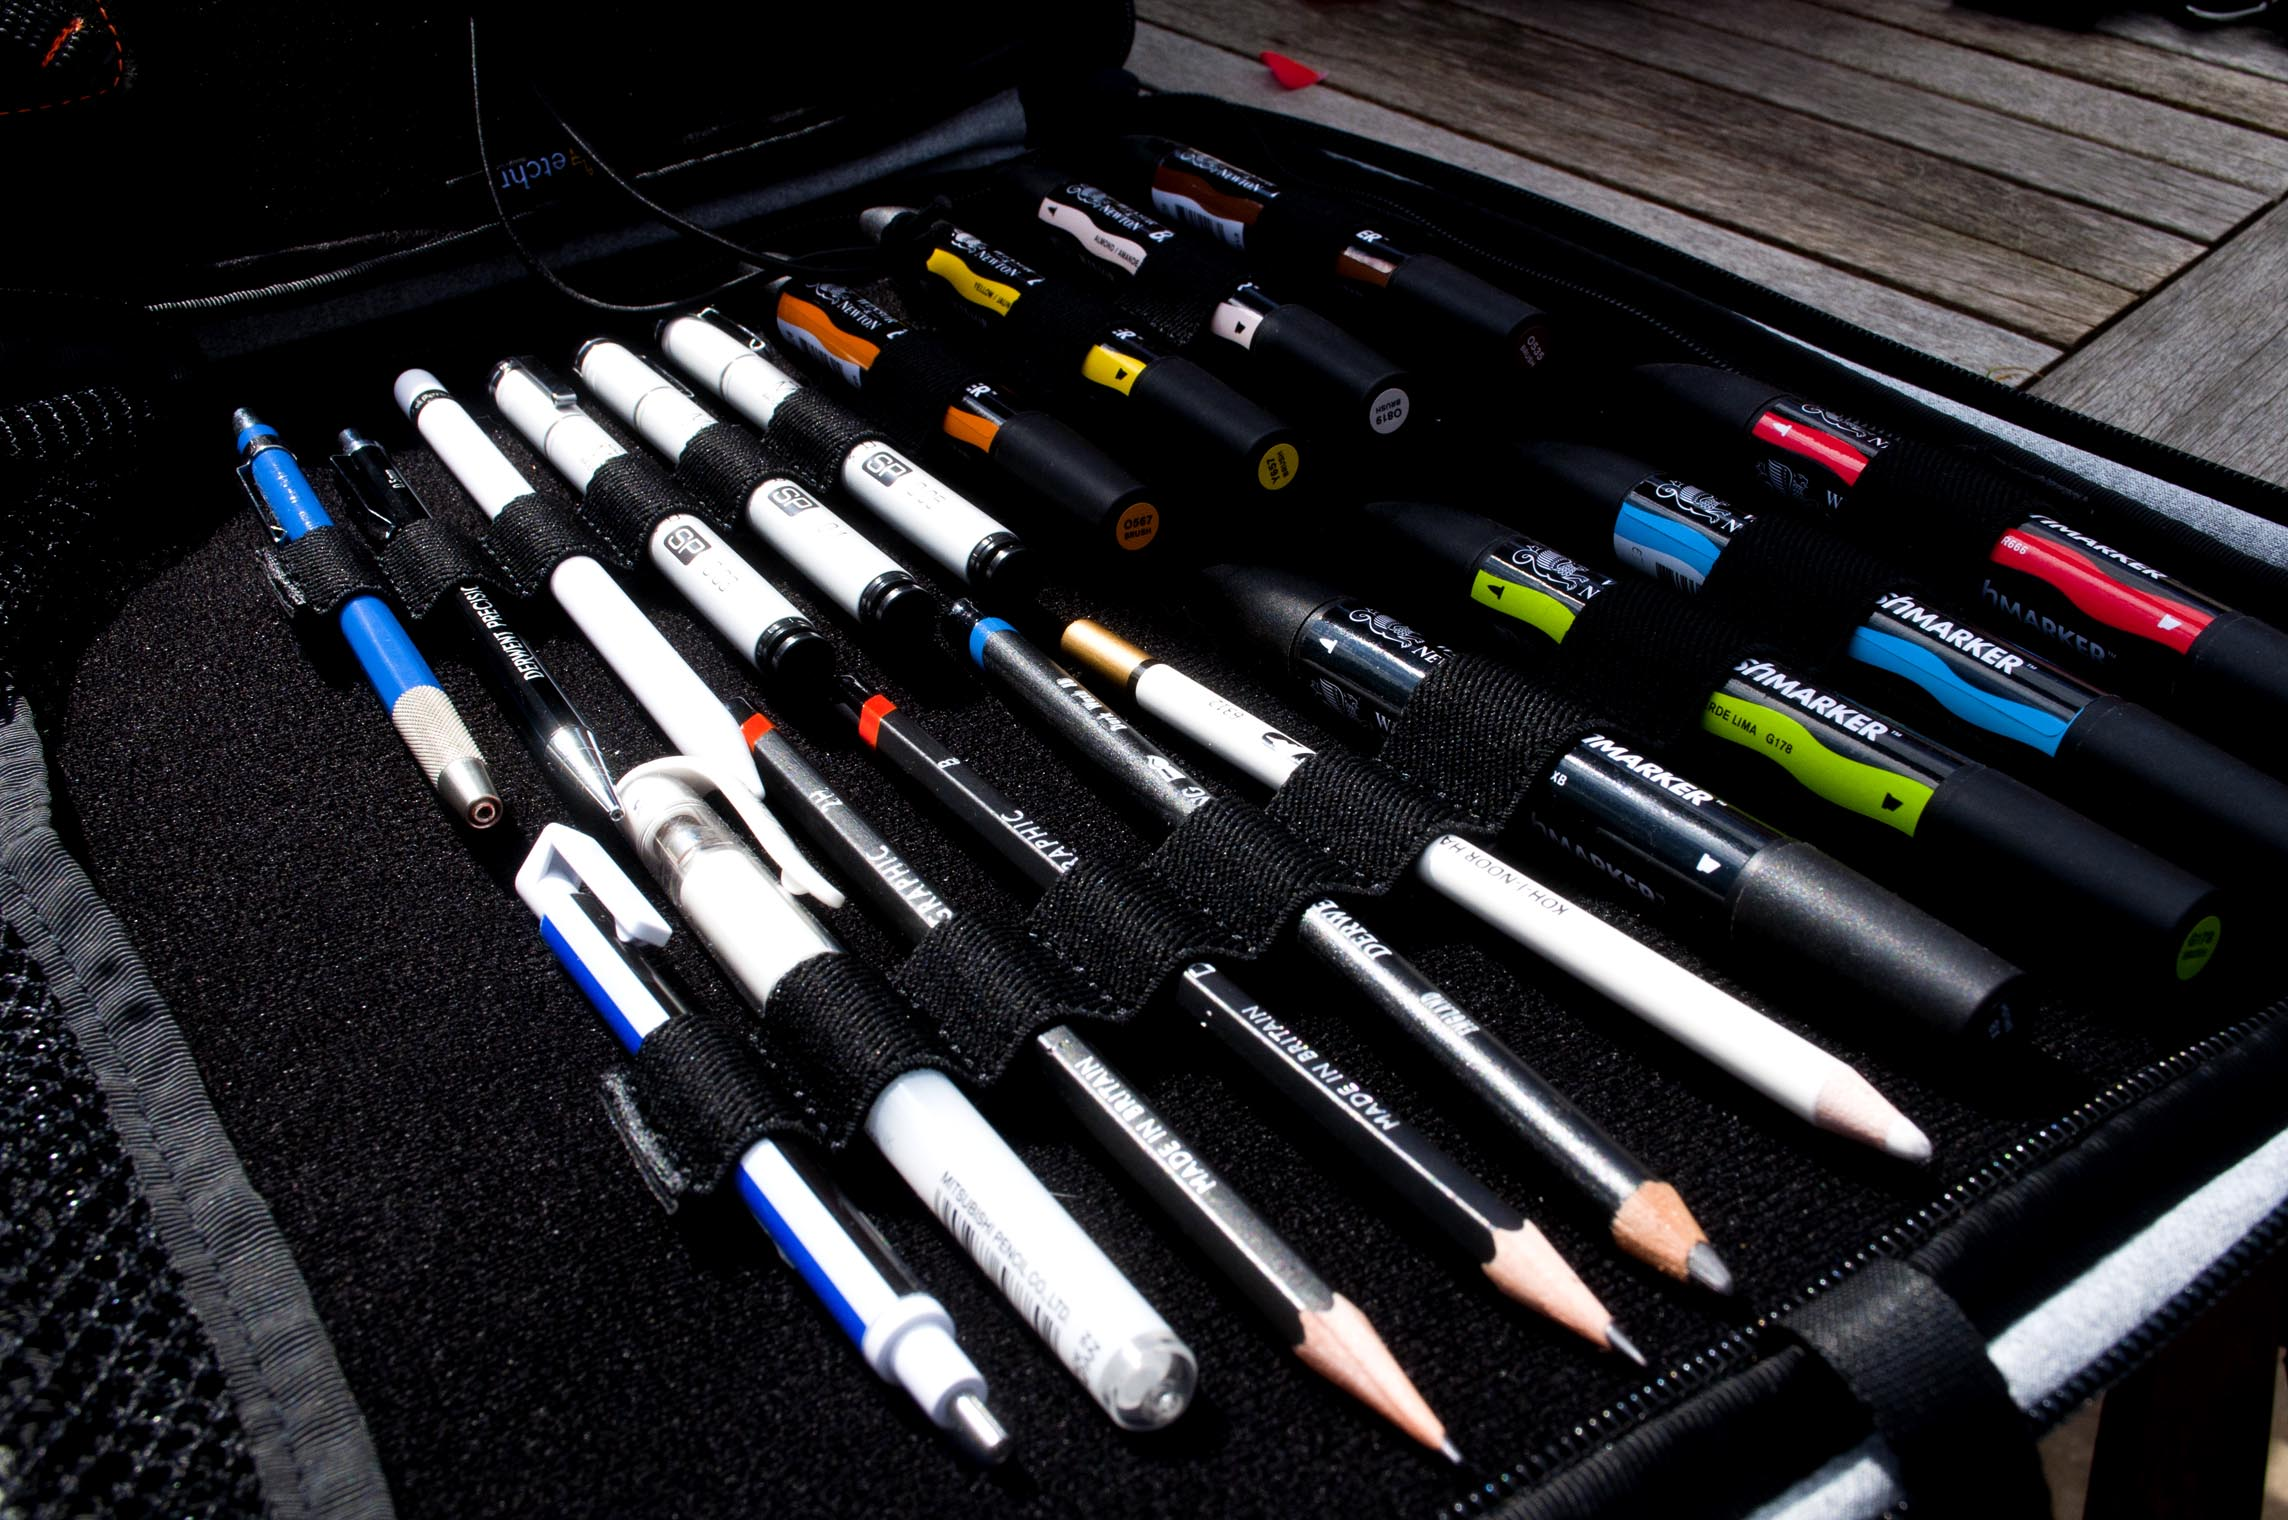 Etcher With Pens and Pencils.jpg